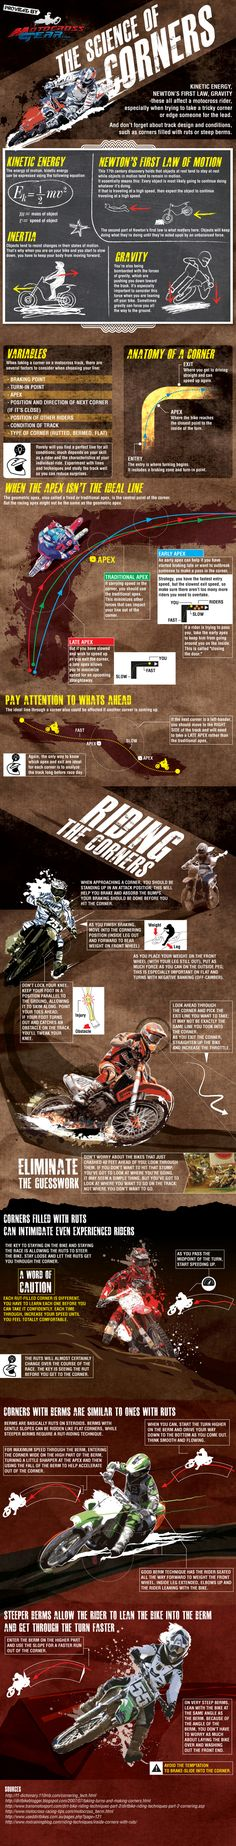 Infographic about how to corner on a motorcycle | Motorcycle riding tips | #ridesafe #motorcycles #bikelife #cornering